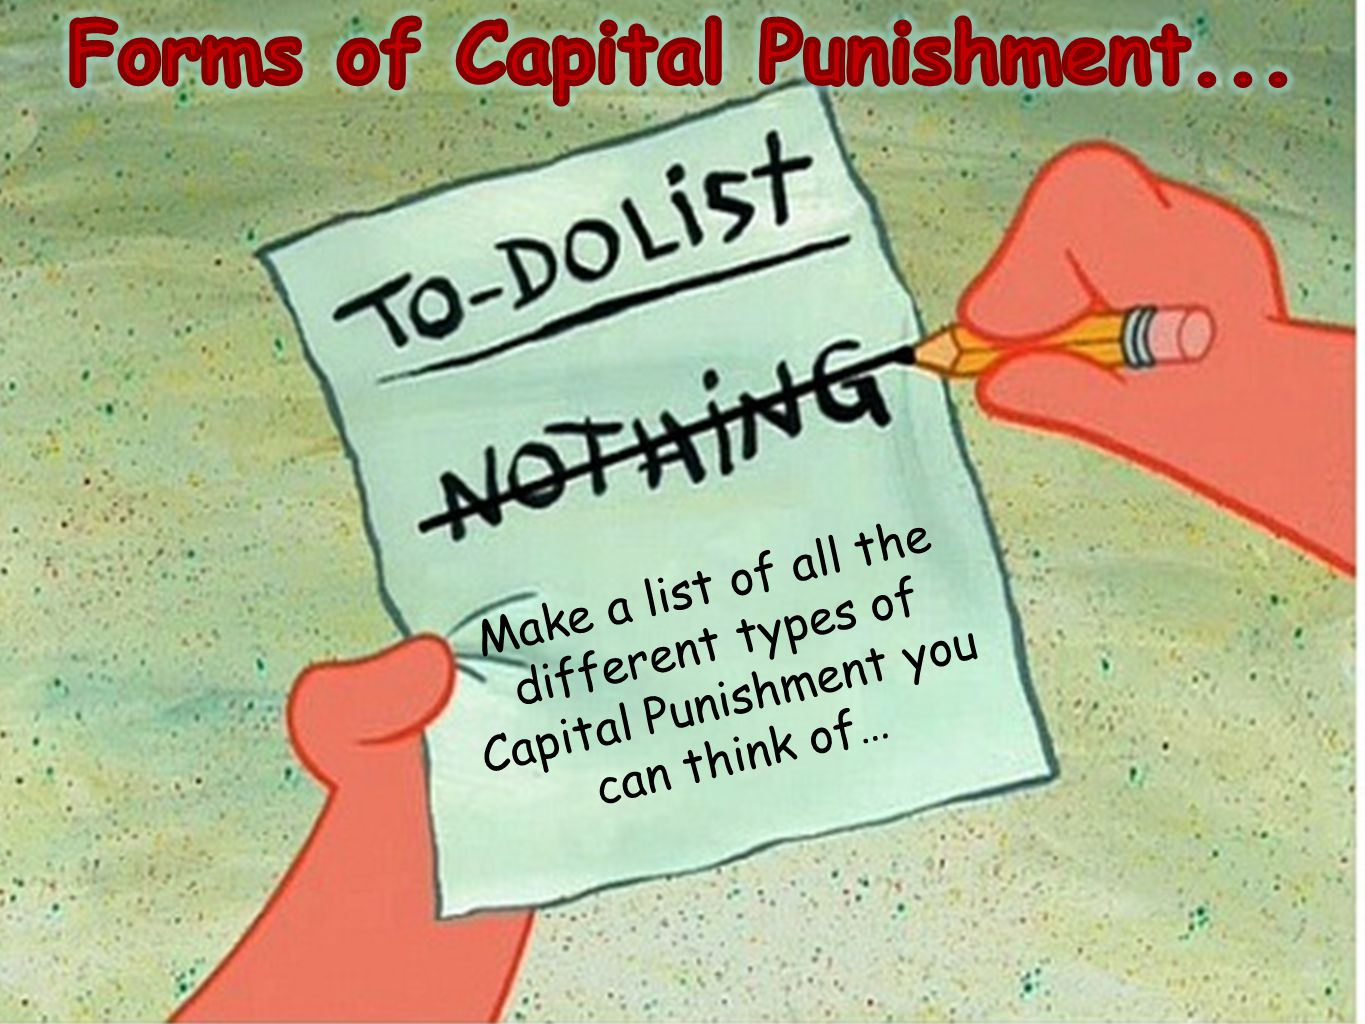 Make a list of all the different types of Capital Punishment you can think of…